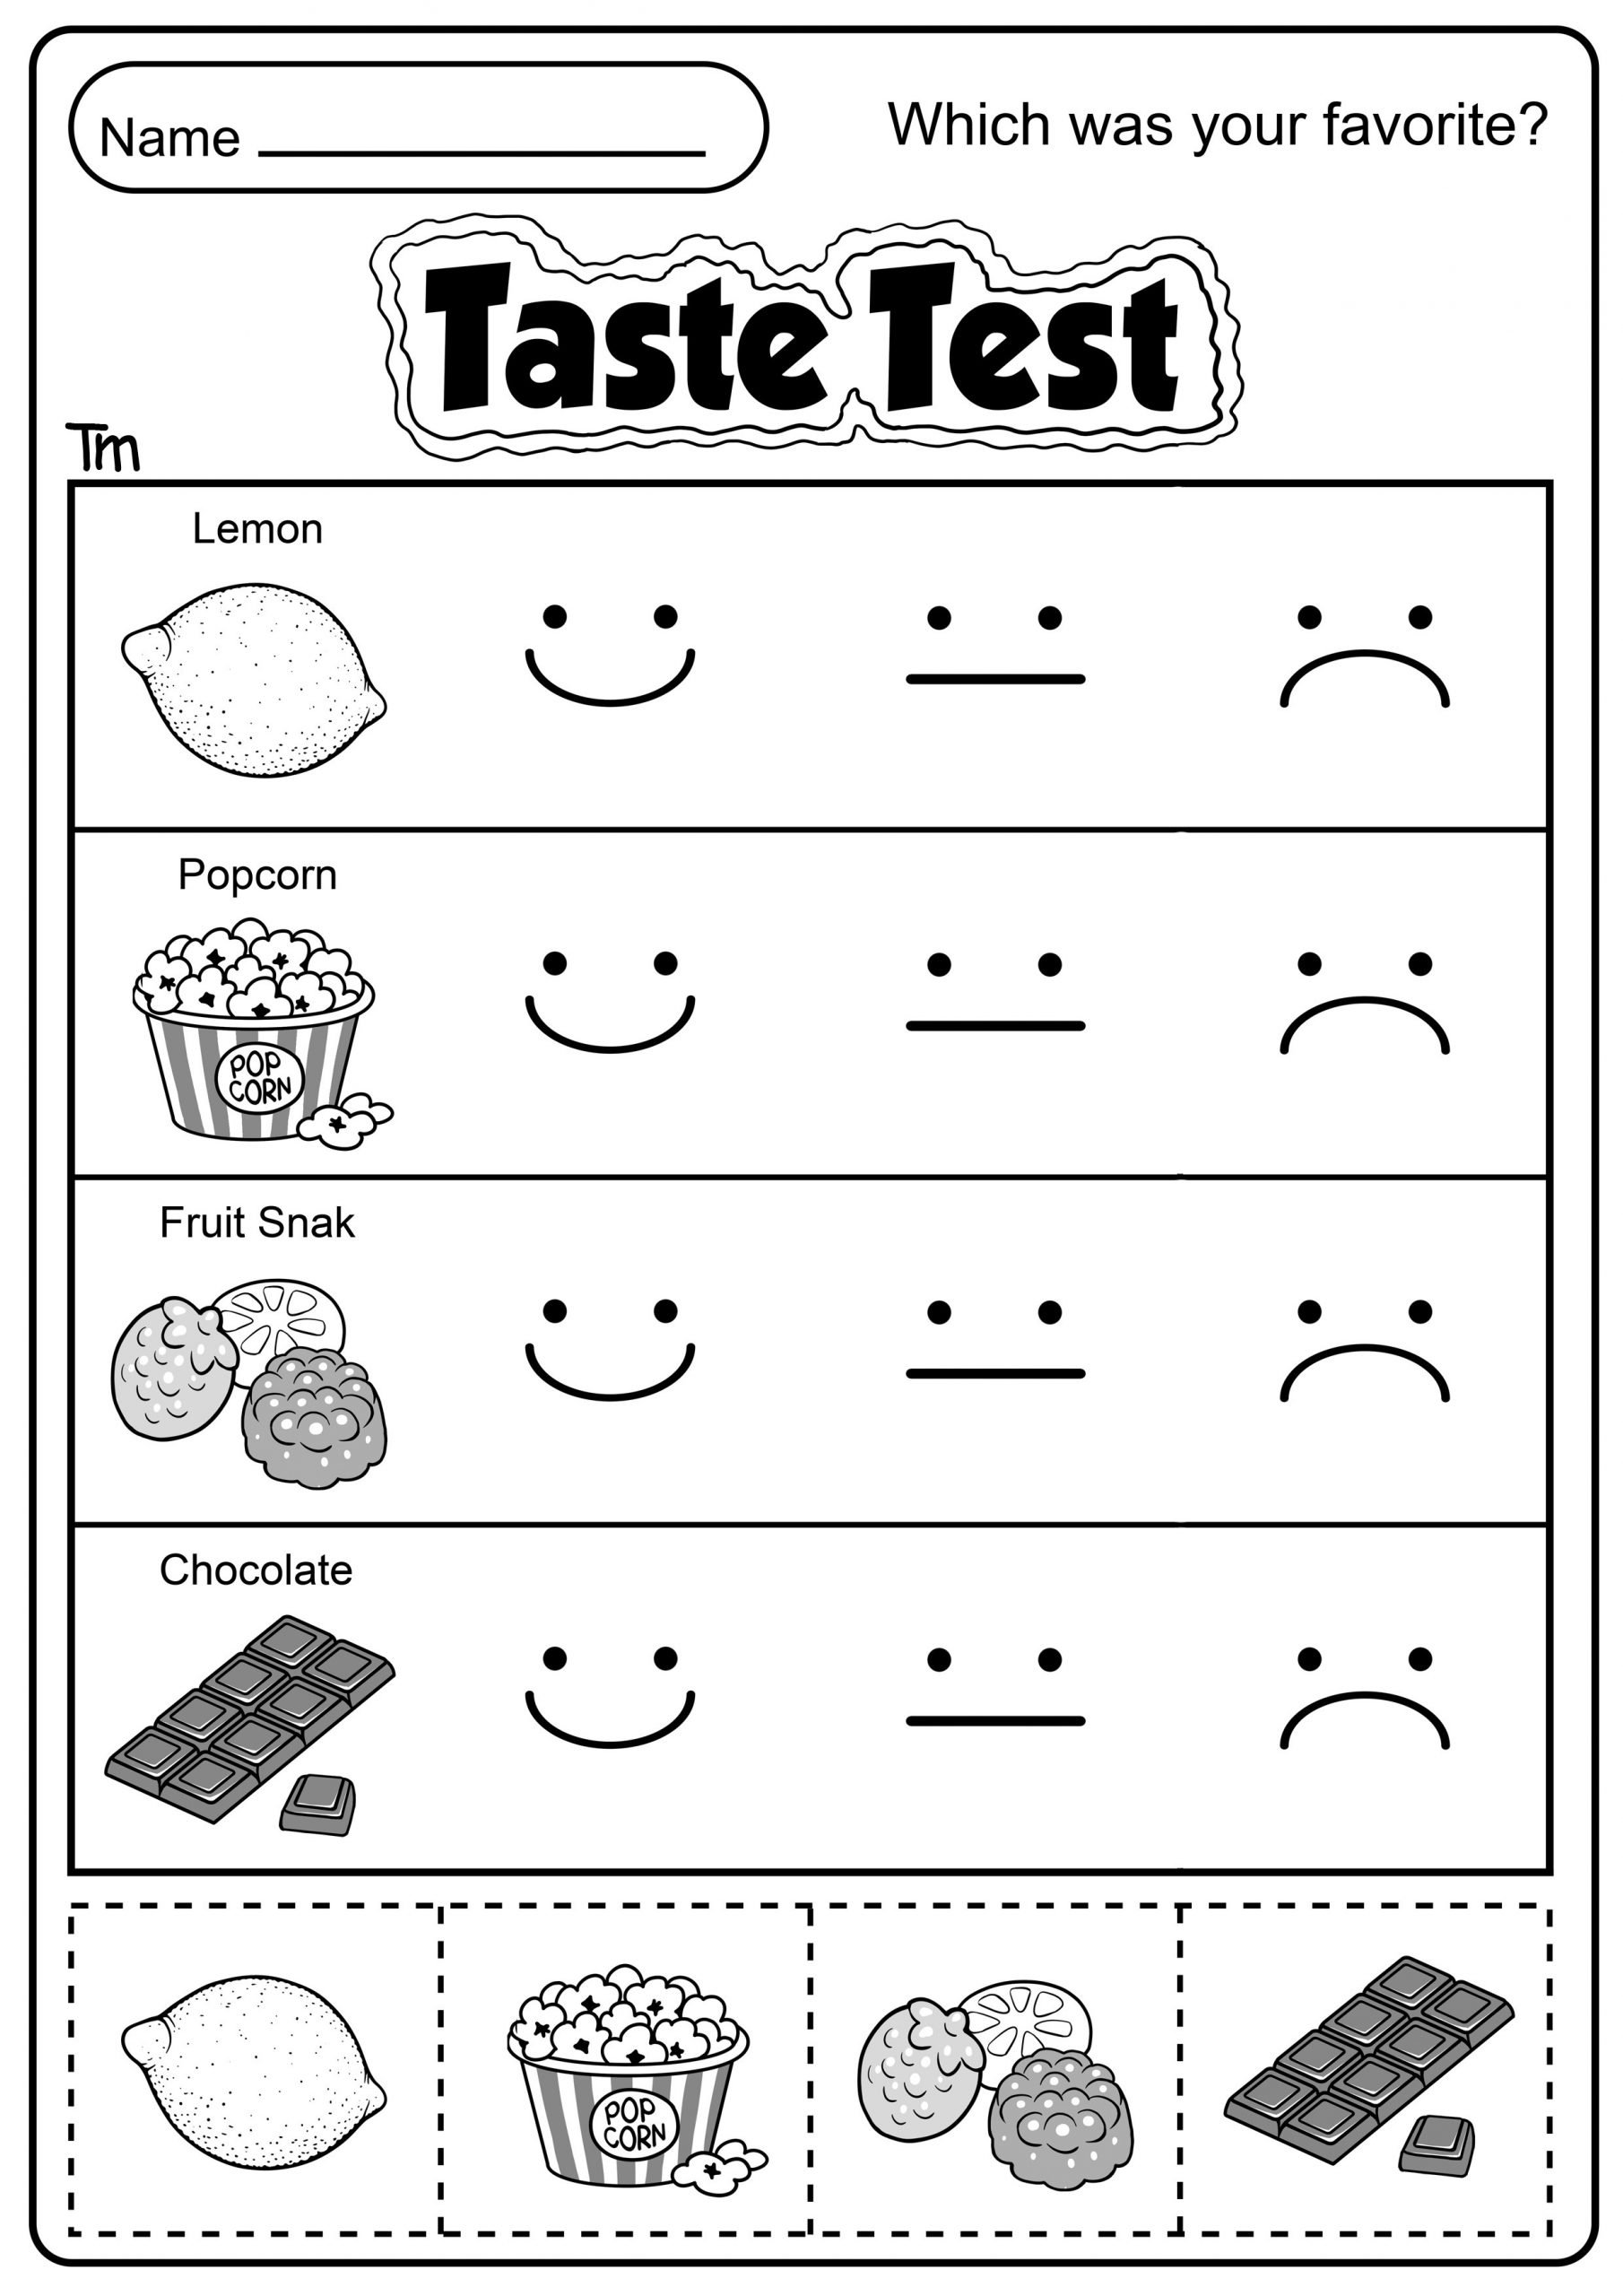 5 Senses Worksheet for Kindergarten the Five Senses Taste Test Teachersmag